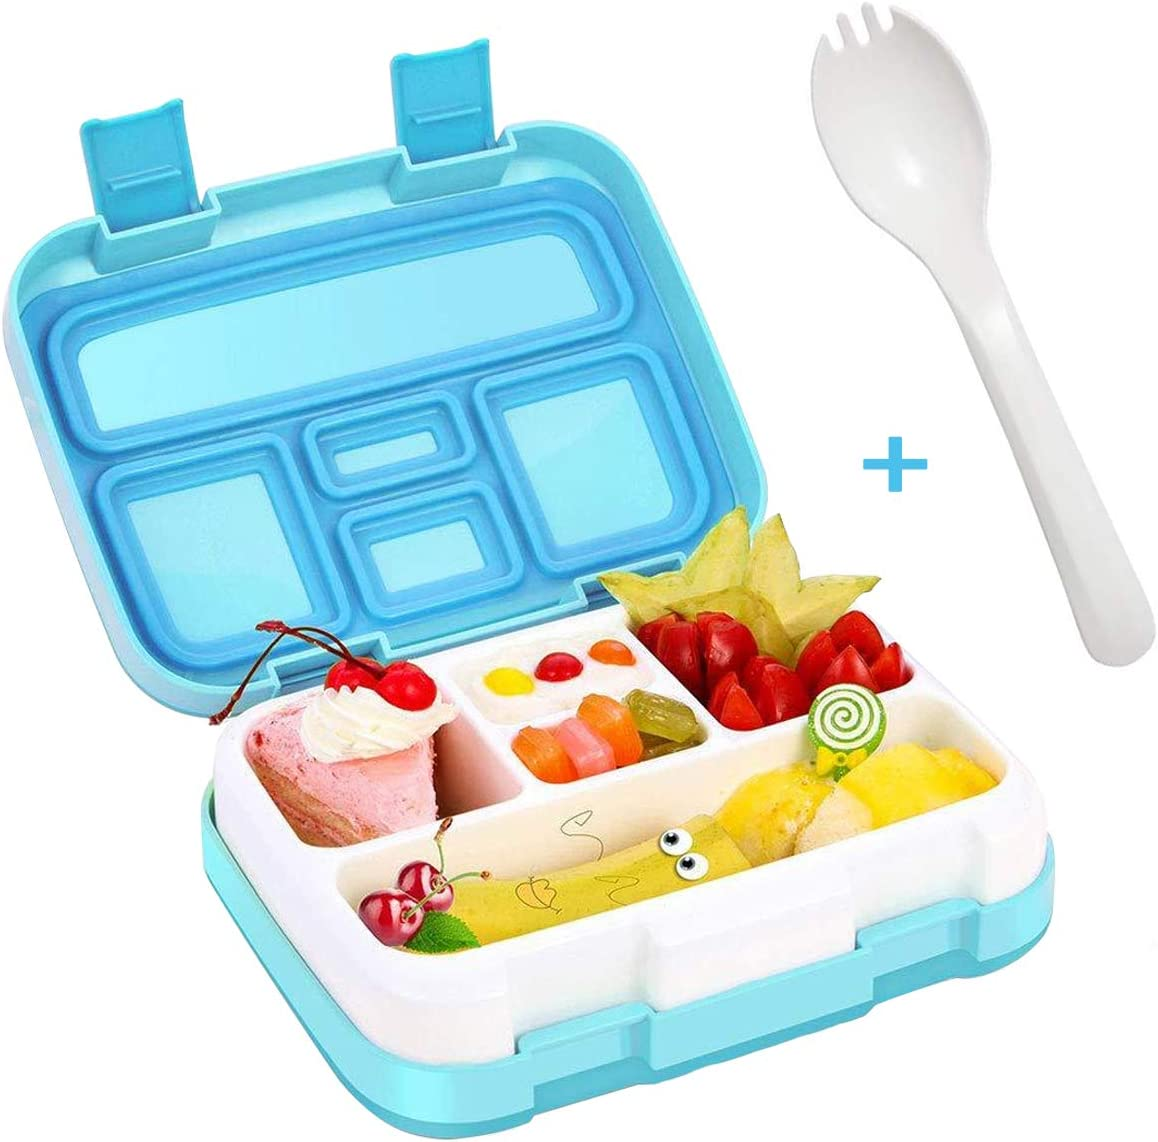 Lunch Box for Kids Bento Box BPA-Free Upgraded School Lunch Container with Spoon 5-Compartment Leak Proof Durable, School,Picnics,Travel Meal and Snack Packing Food Storage Container(Blue)